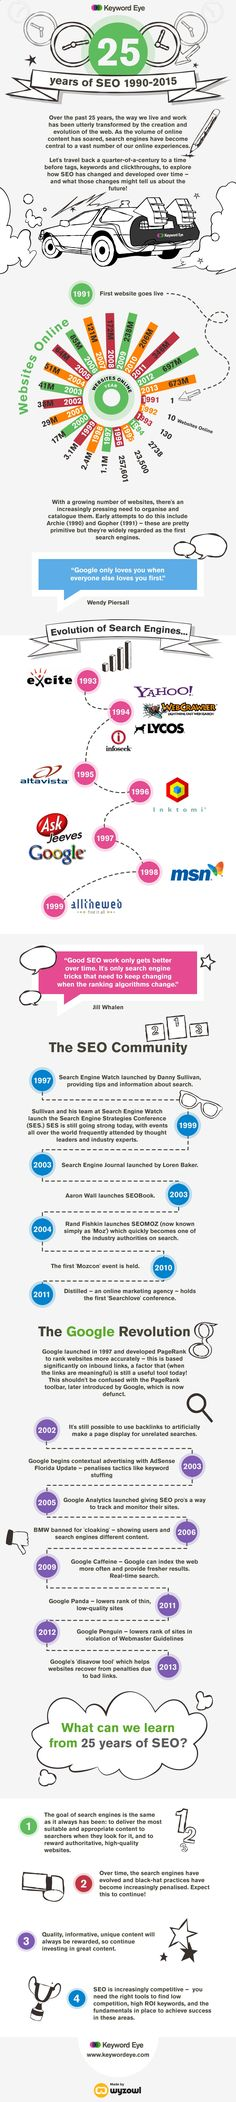 Search Engine Optimization : les 25 ans - #Insdigbord #seo